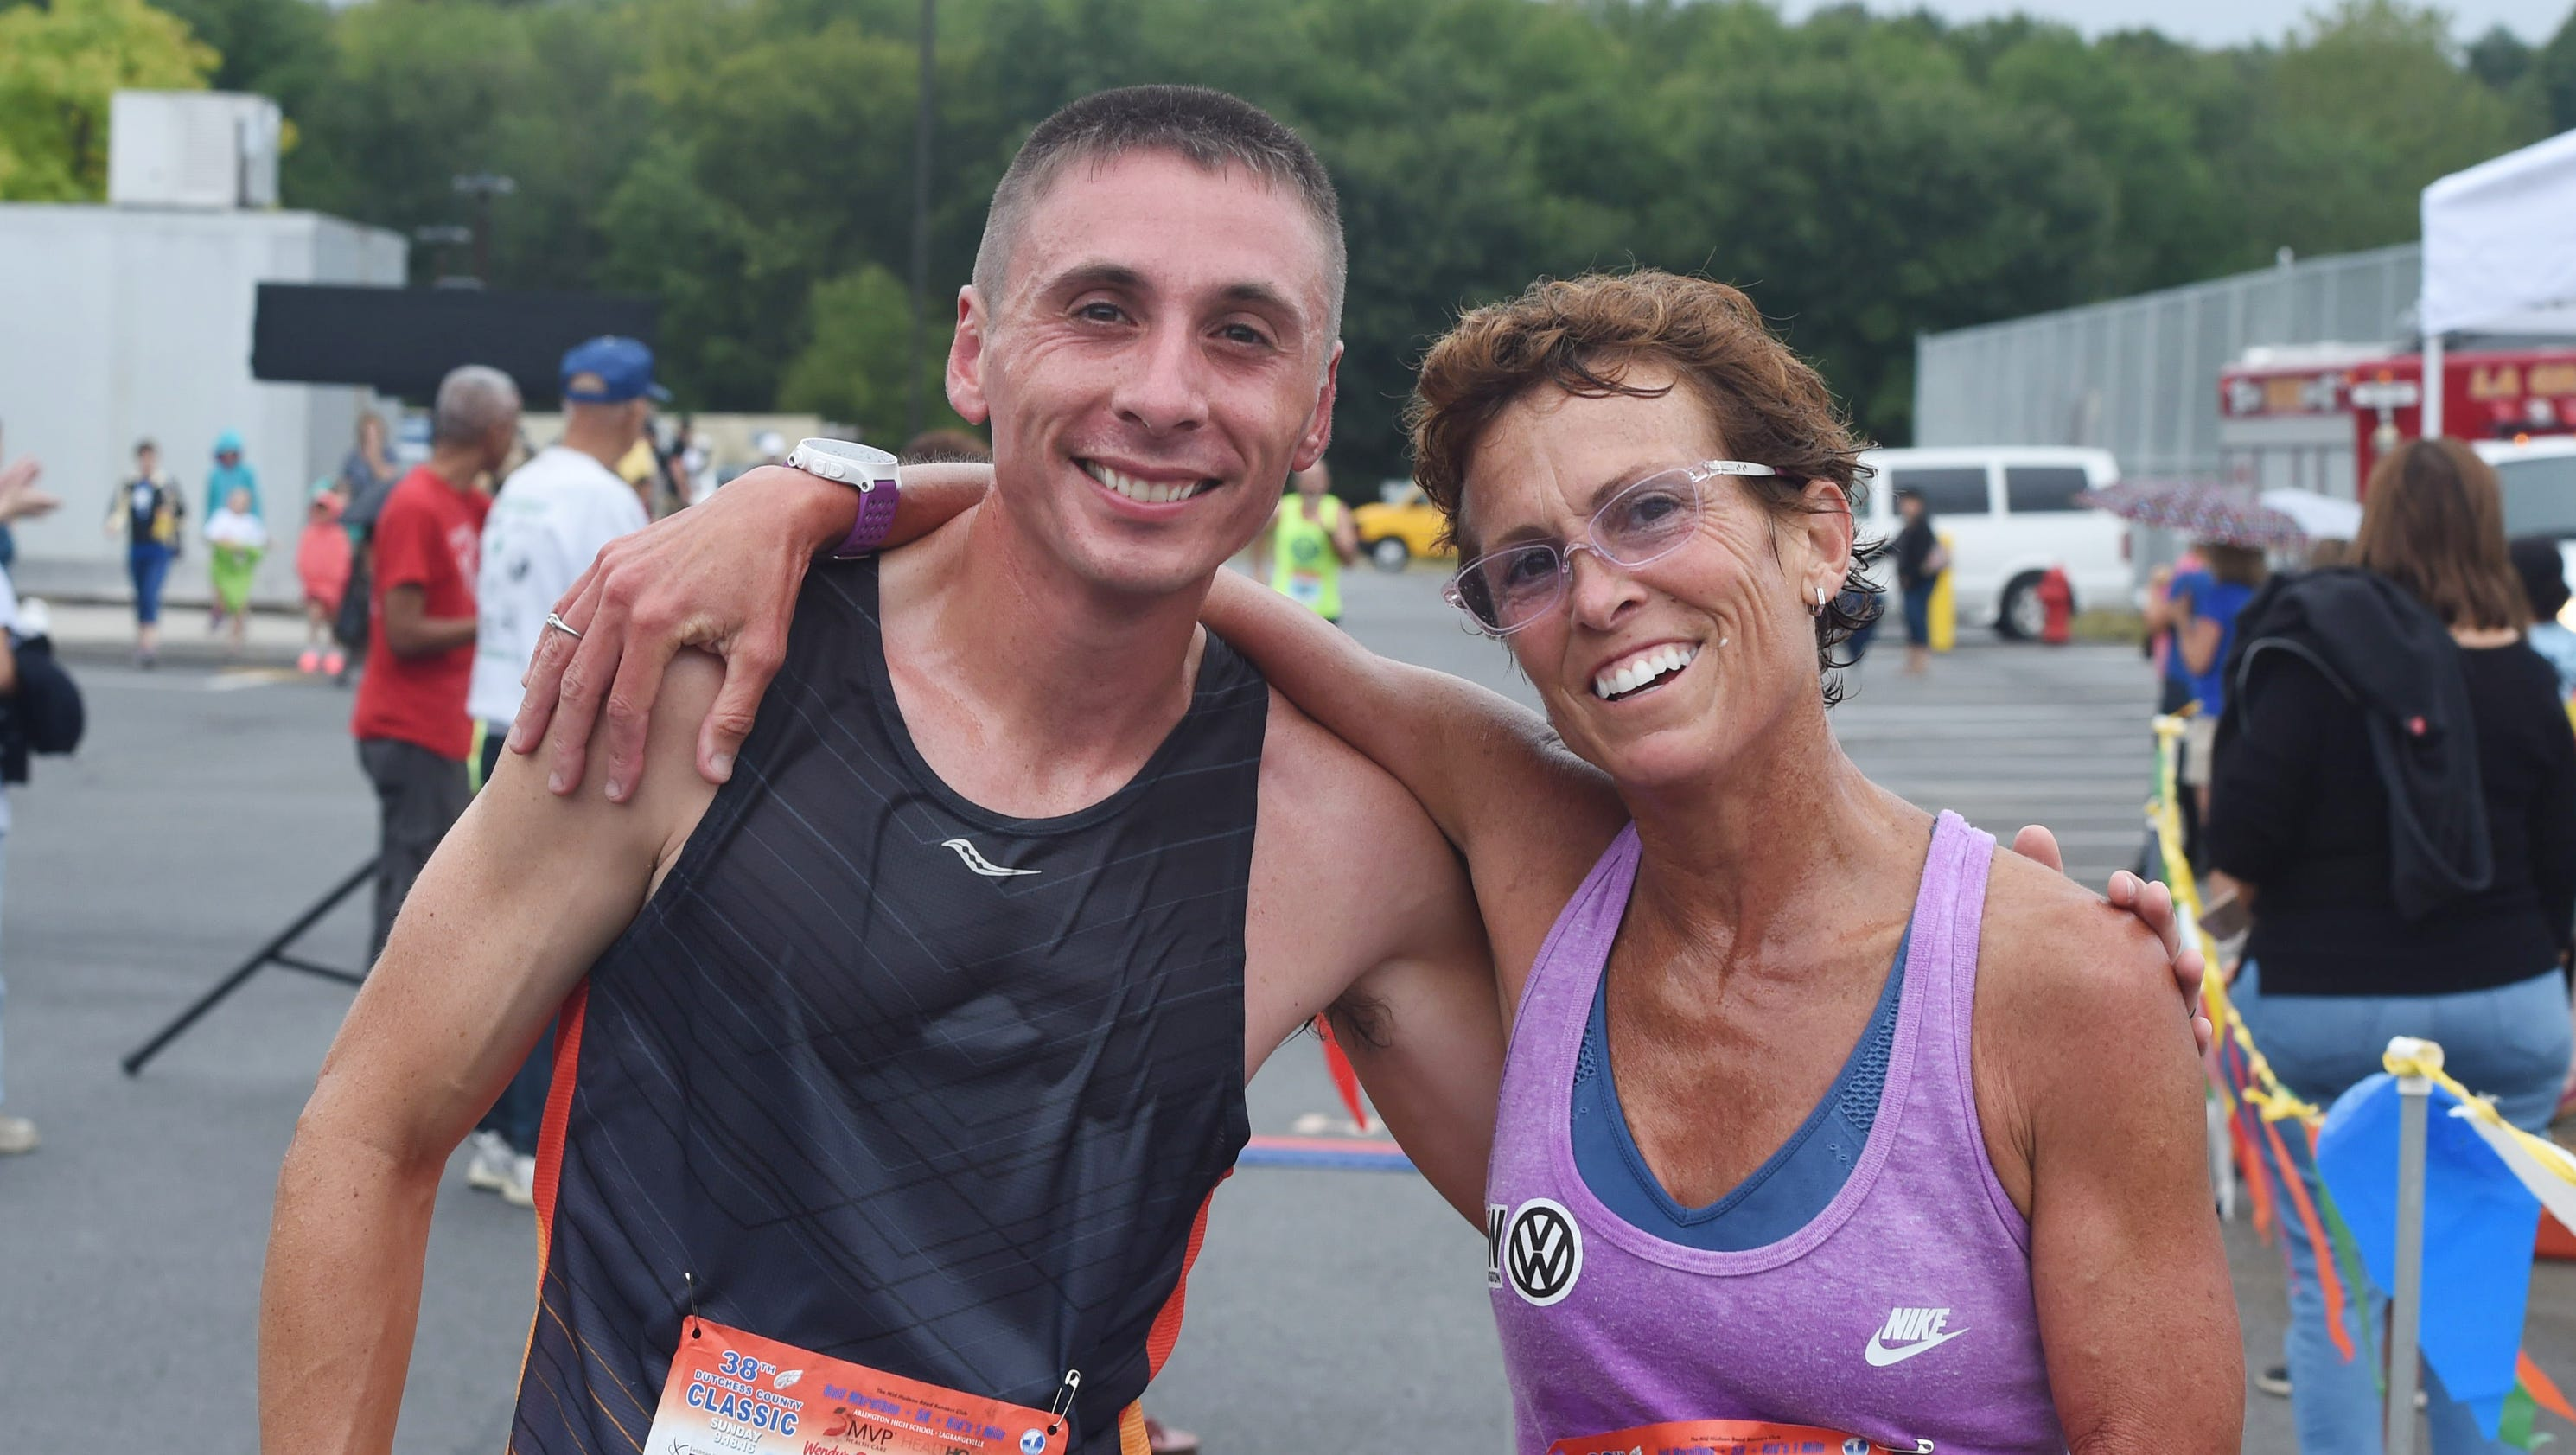 how did you finish dutchess county classic results here